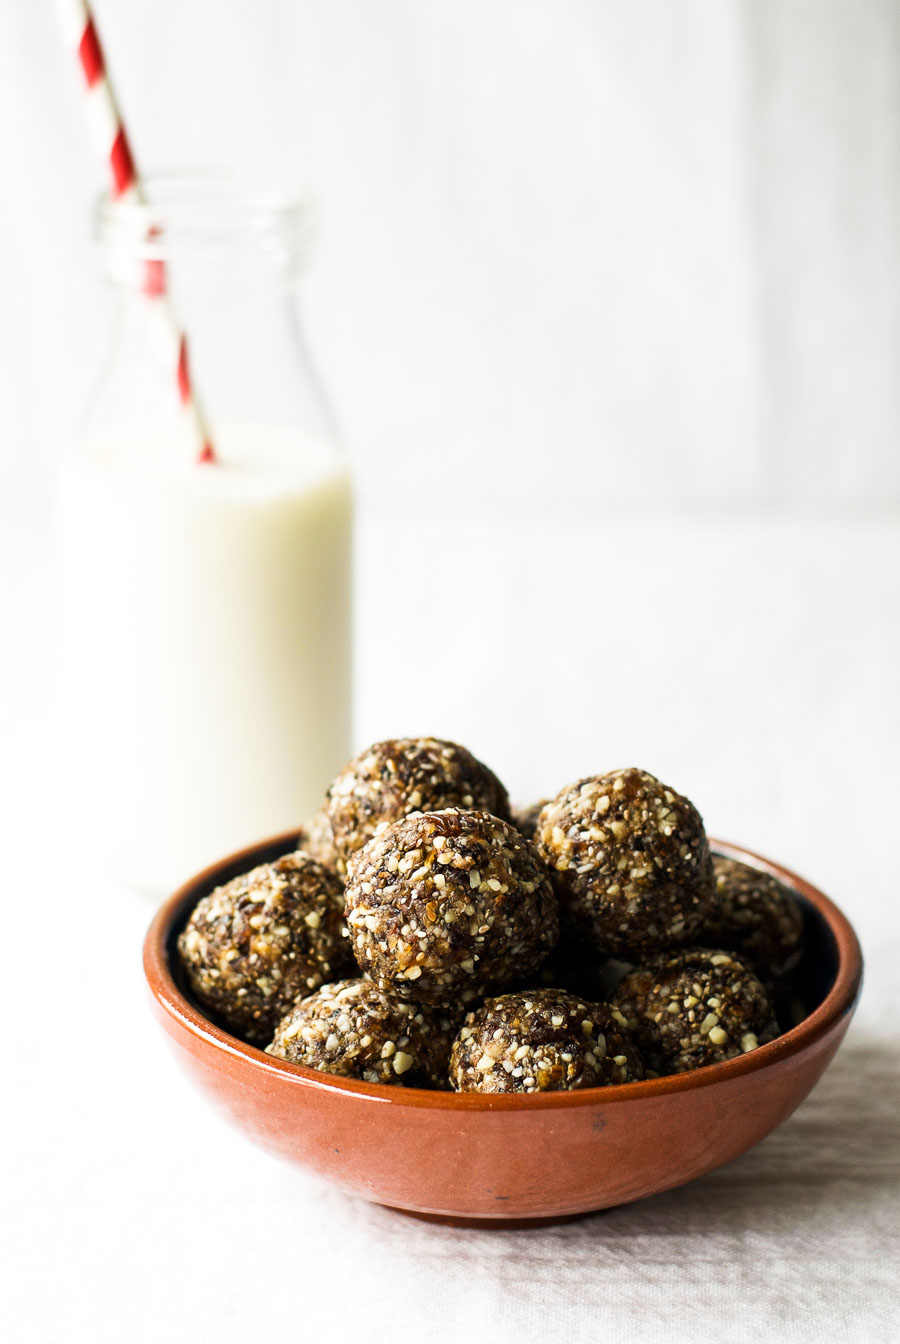 Cherry almond energy balls